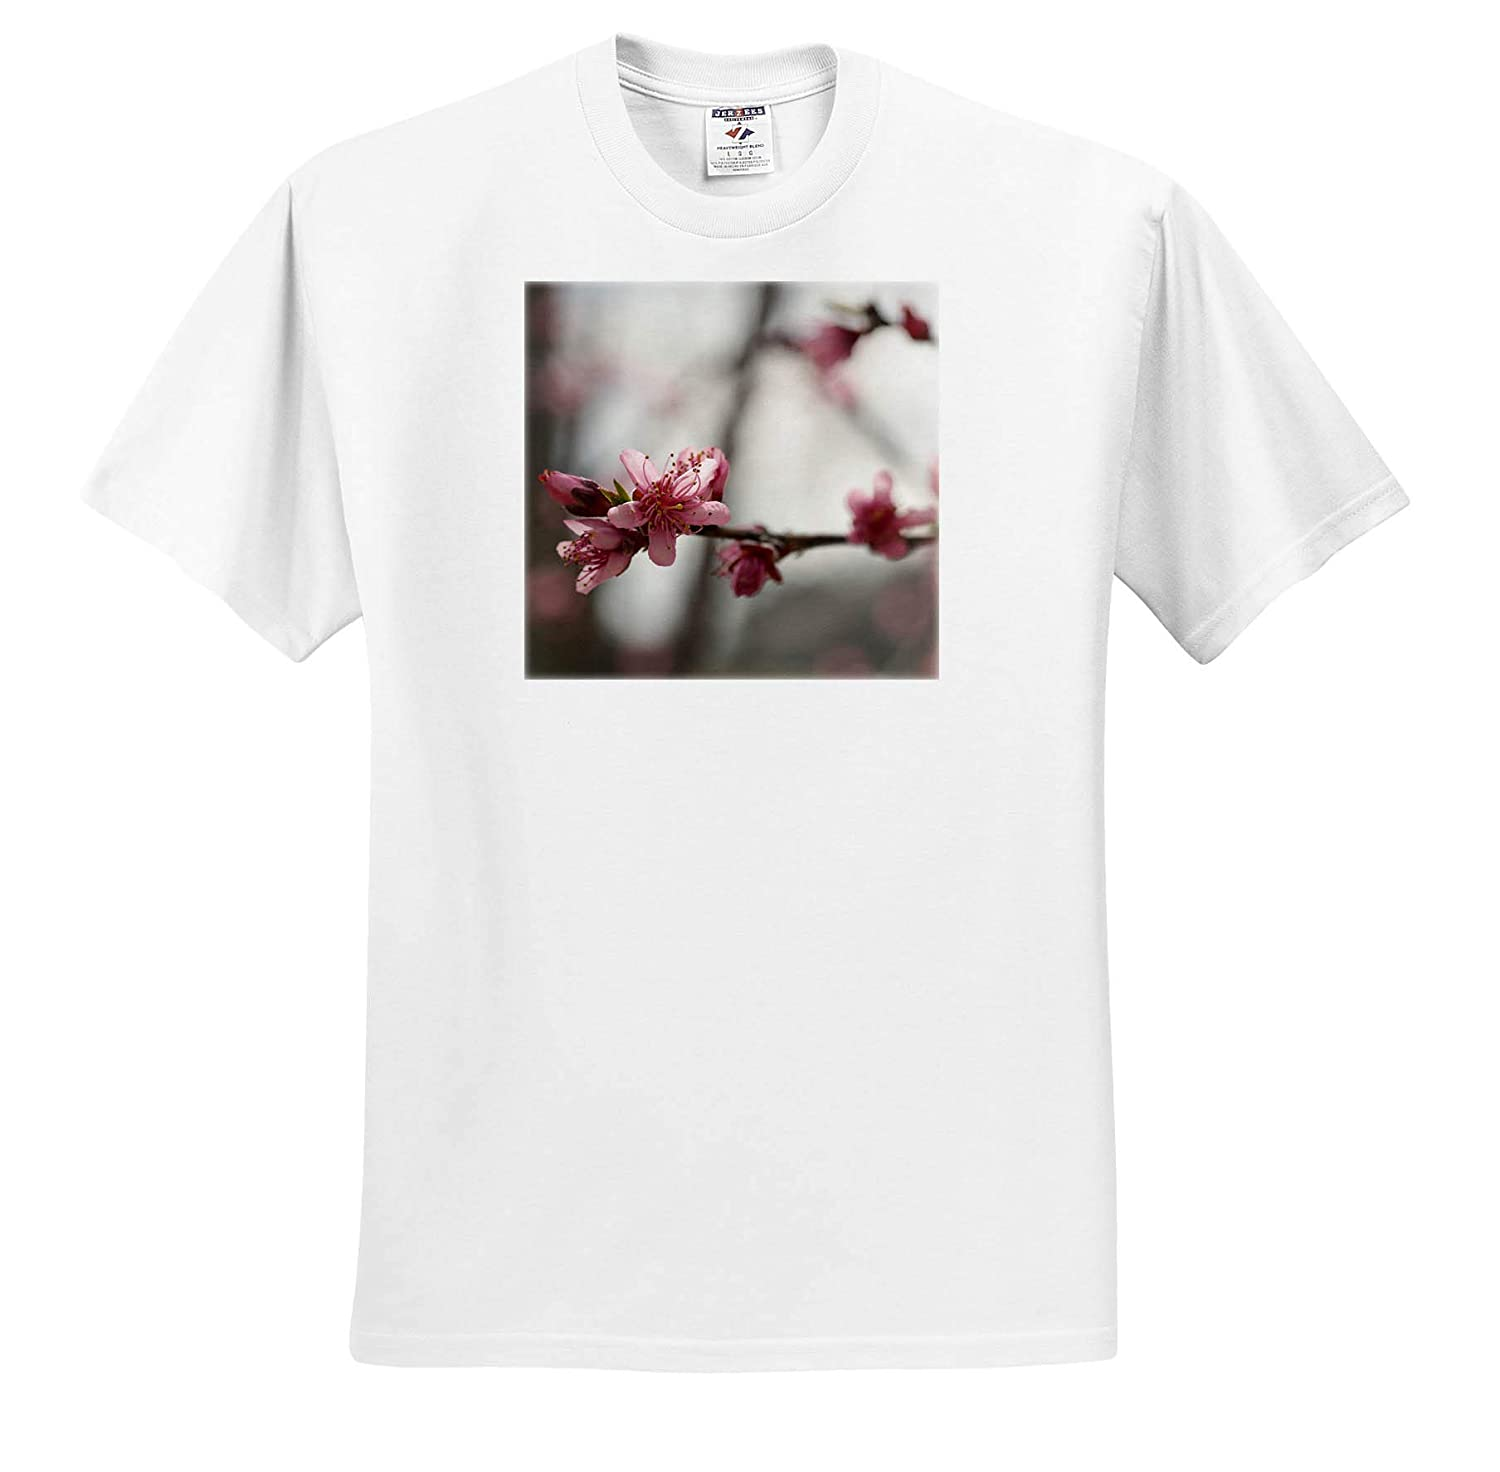 3dRose Stamp City - T-Shirts Photograph of Peach Tree Blossoms in Bloom Flowers